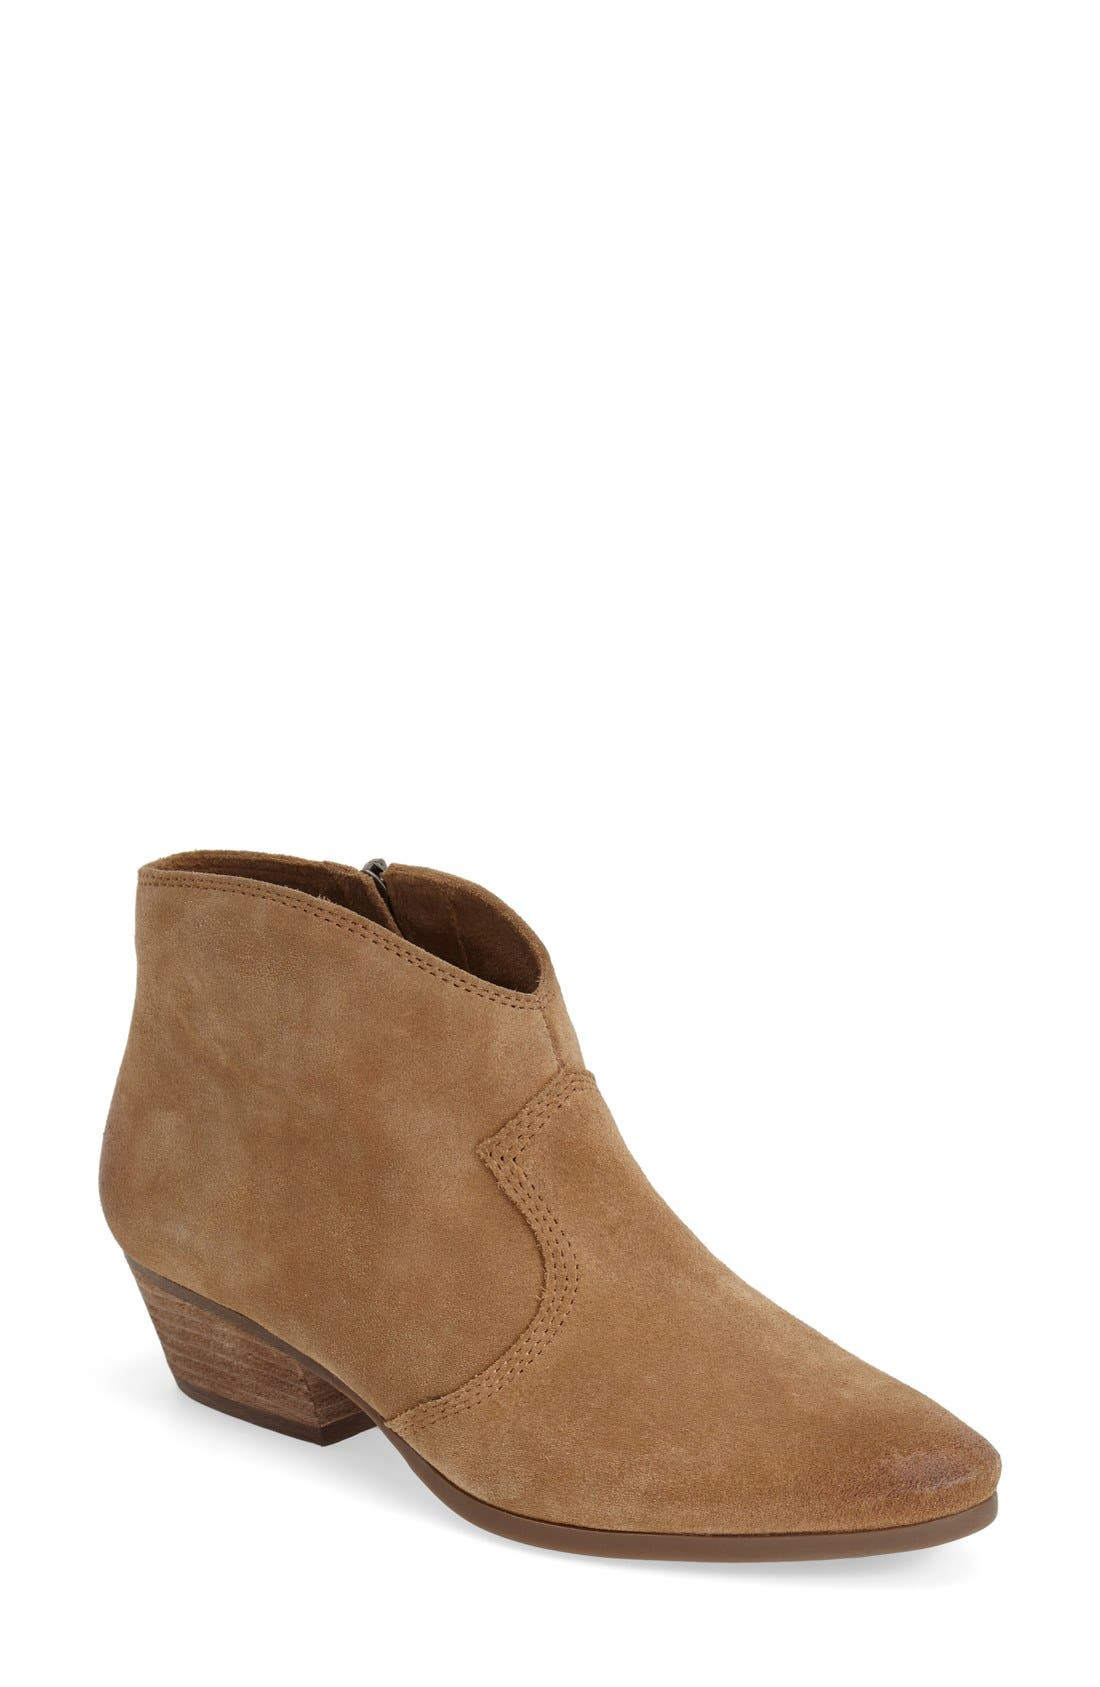 Alternate Image 1 Selected - Vince Camuto 'Cider' Bootie (Women)